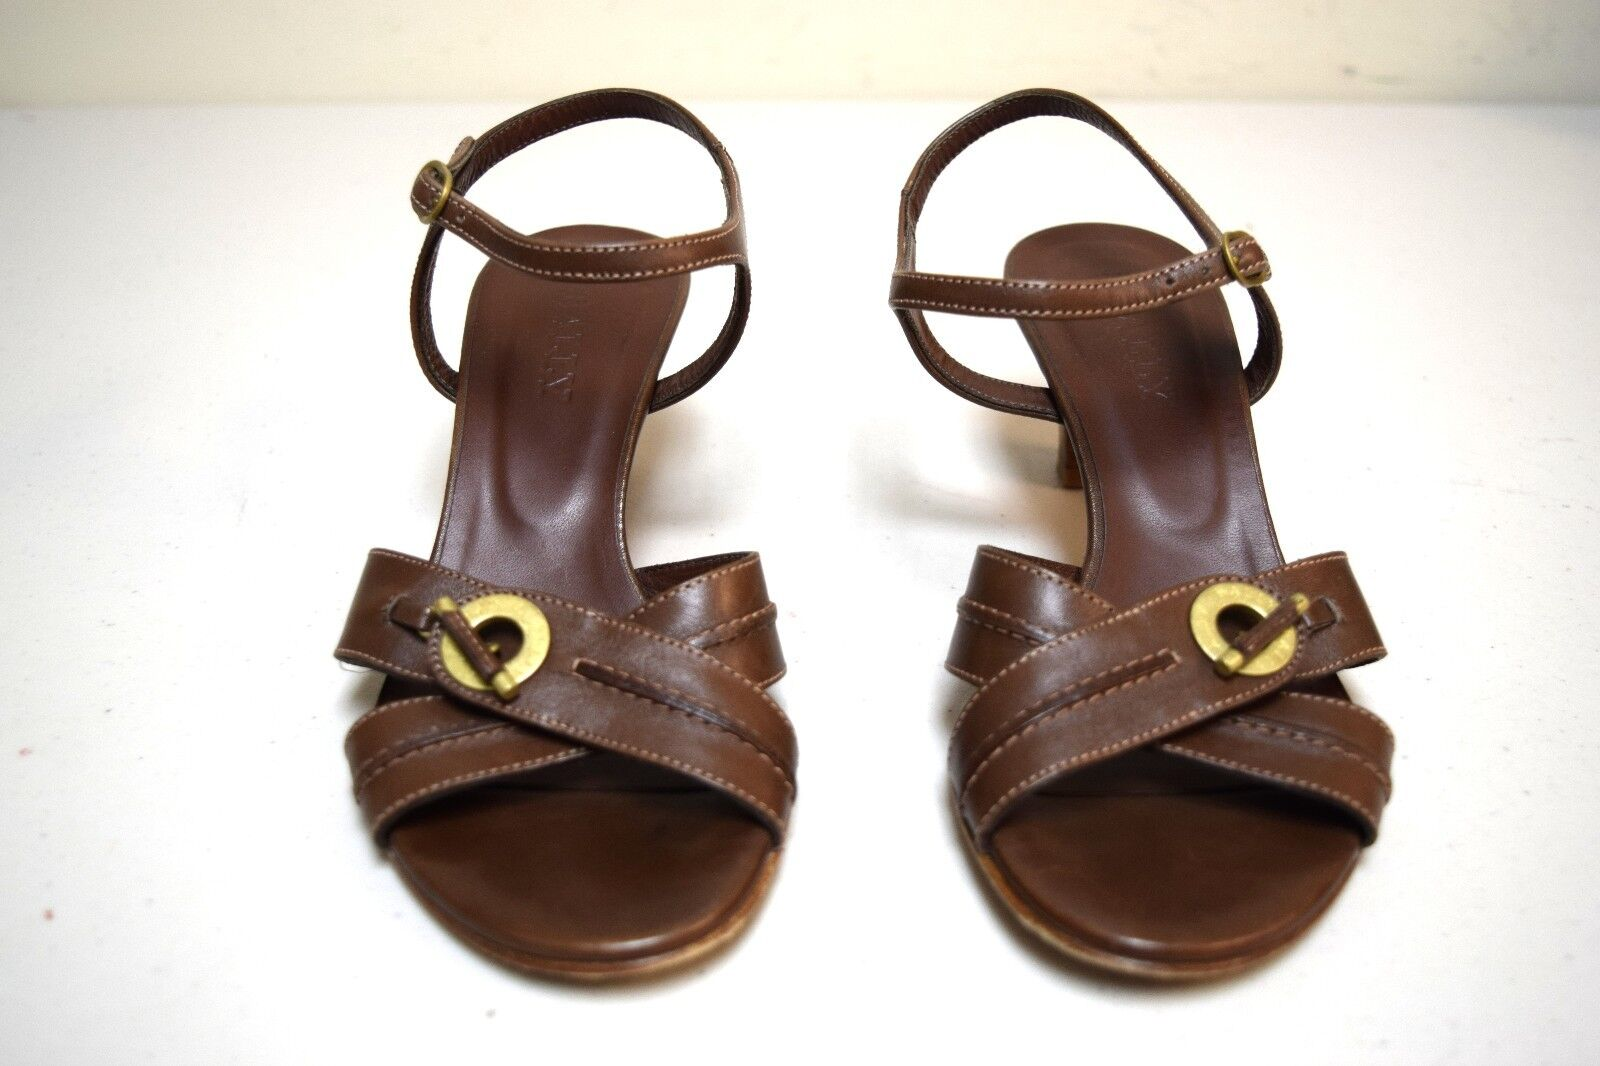 BALLY of SWITZERLAND Marronee Cross Ankle Strap Sandals w Leather Leather Leather Locks Dimensione 6 M US a139cf